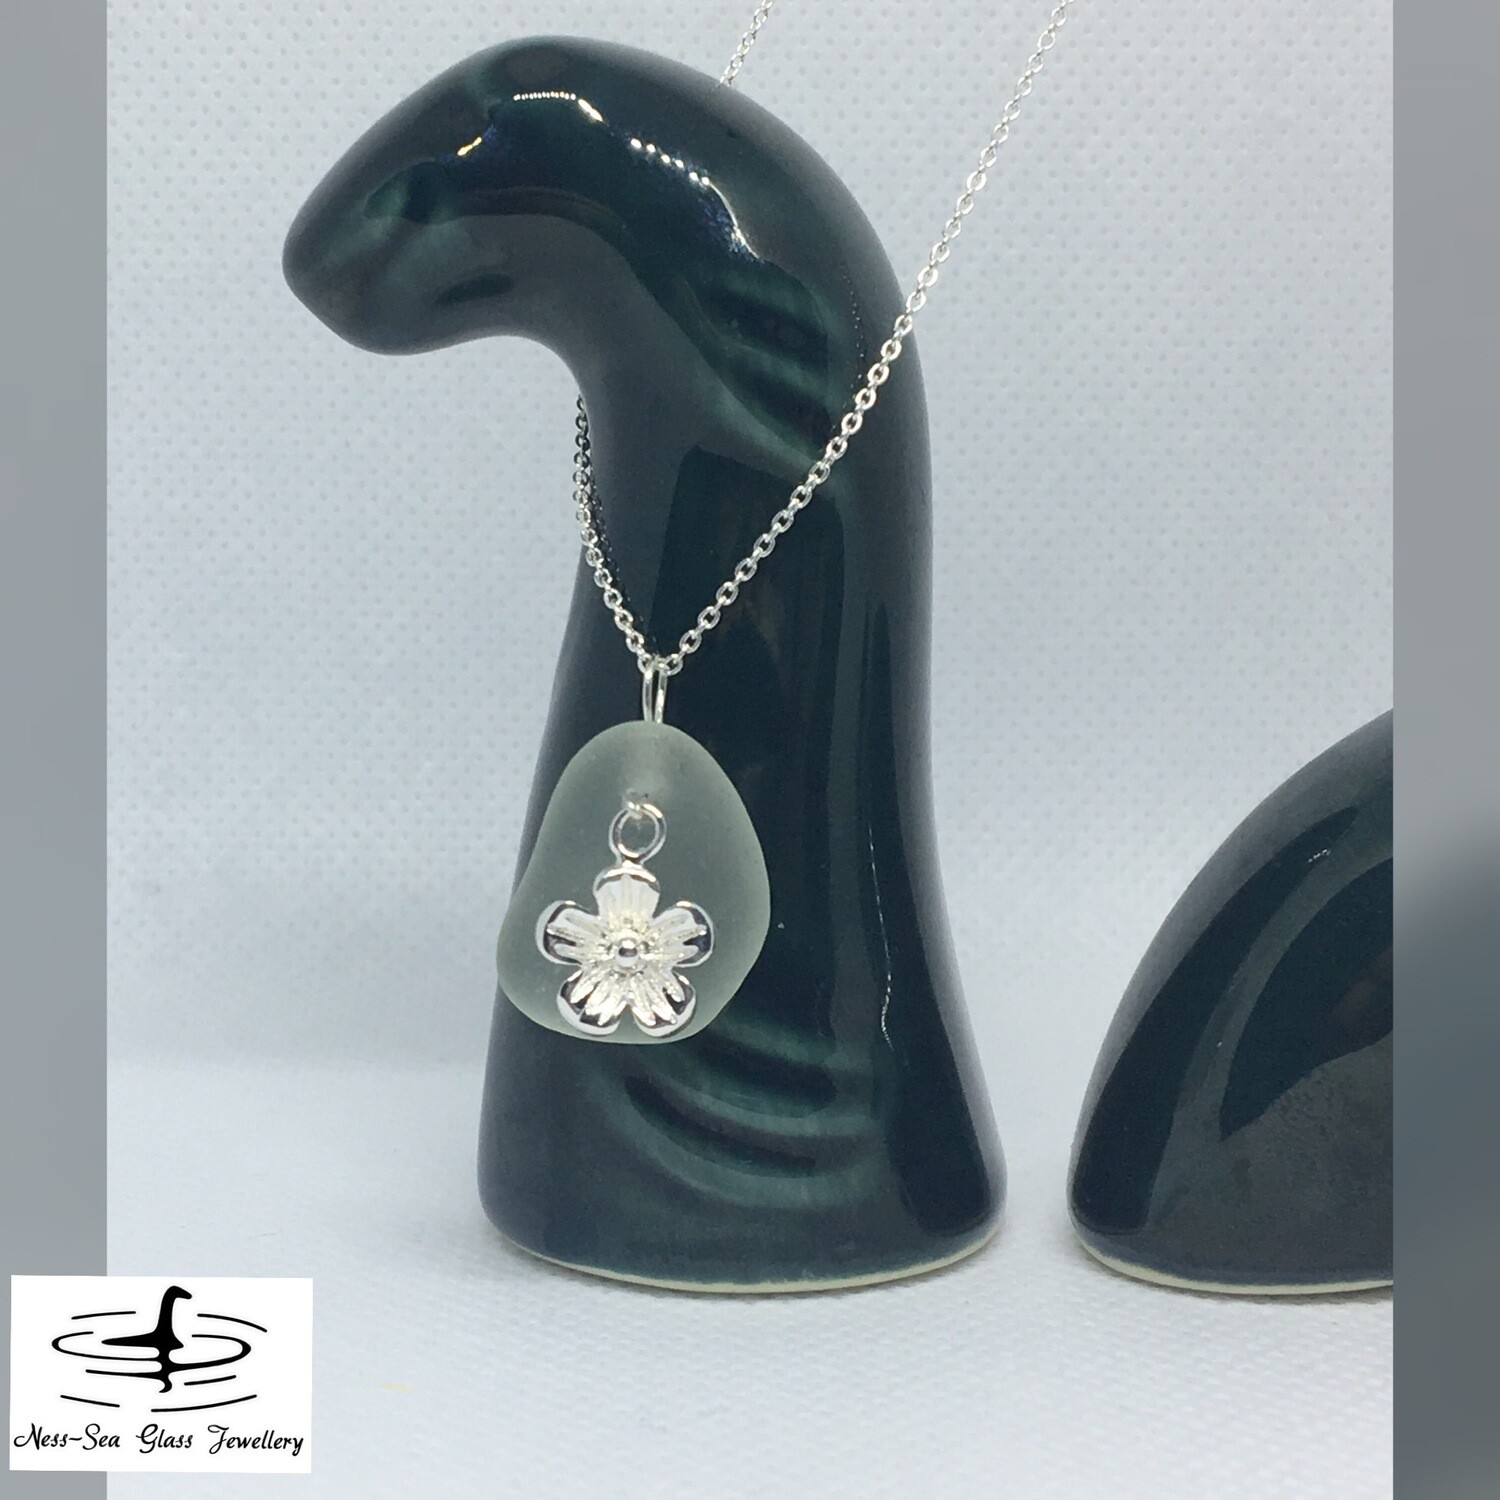 Blue Loch Ness Sea Glass Necklace with Sterling Silver Flower Detail and Fine Sterling Silver Chain